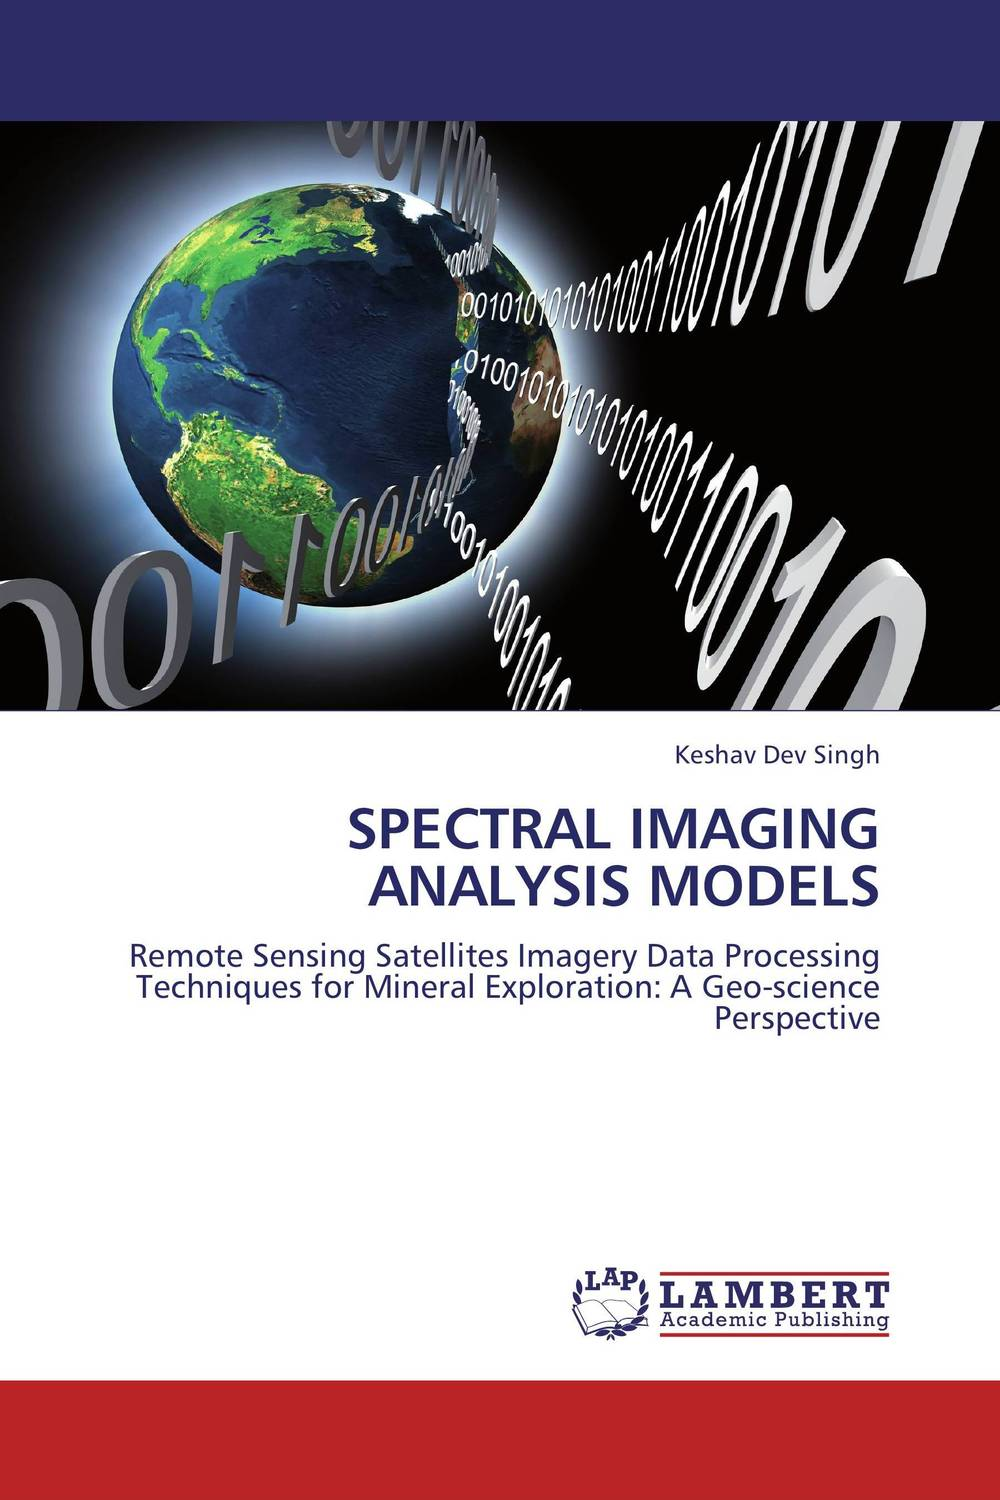 SPECTRAL IMAGING ANALYSIS MODELS alon dadon imaging spectroscopy from space applied for geological mapping